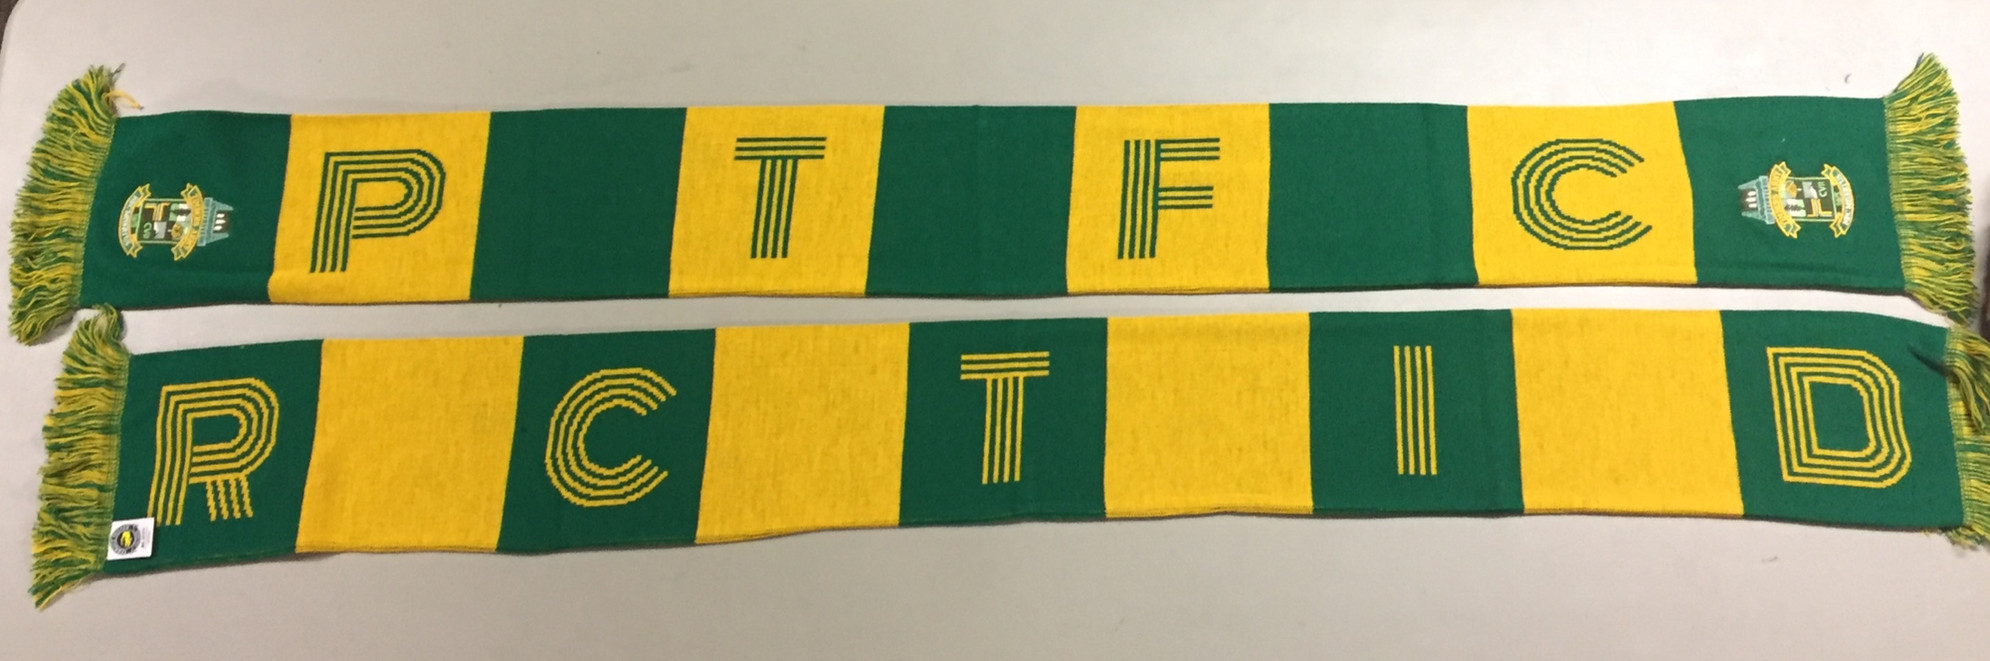 NASL era scarf design for Timbers Army